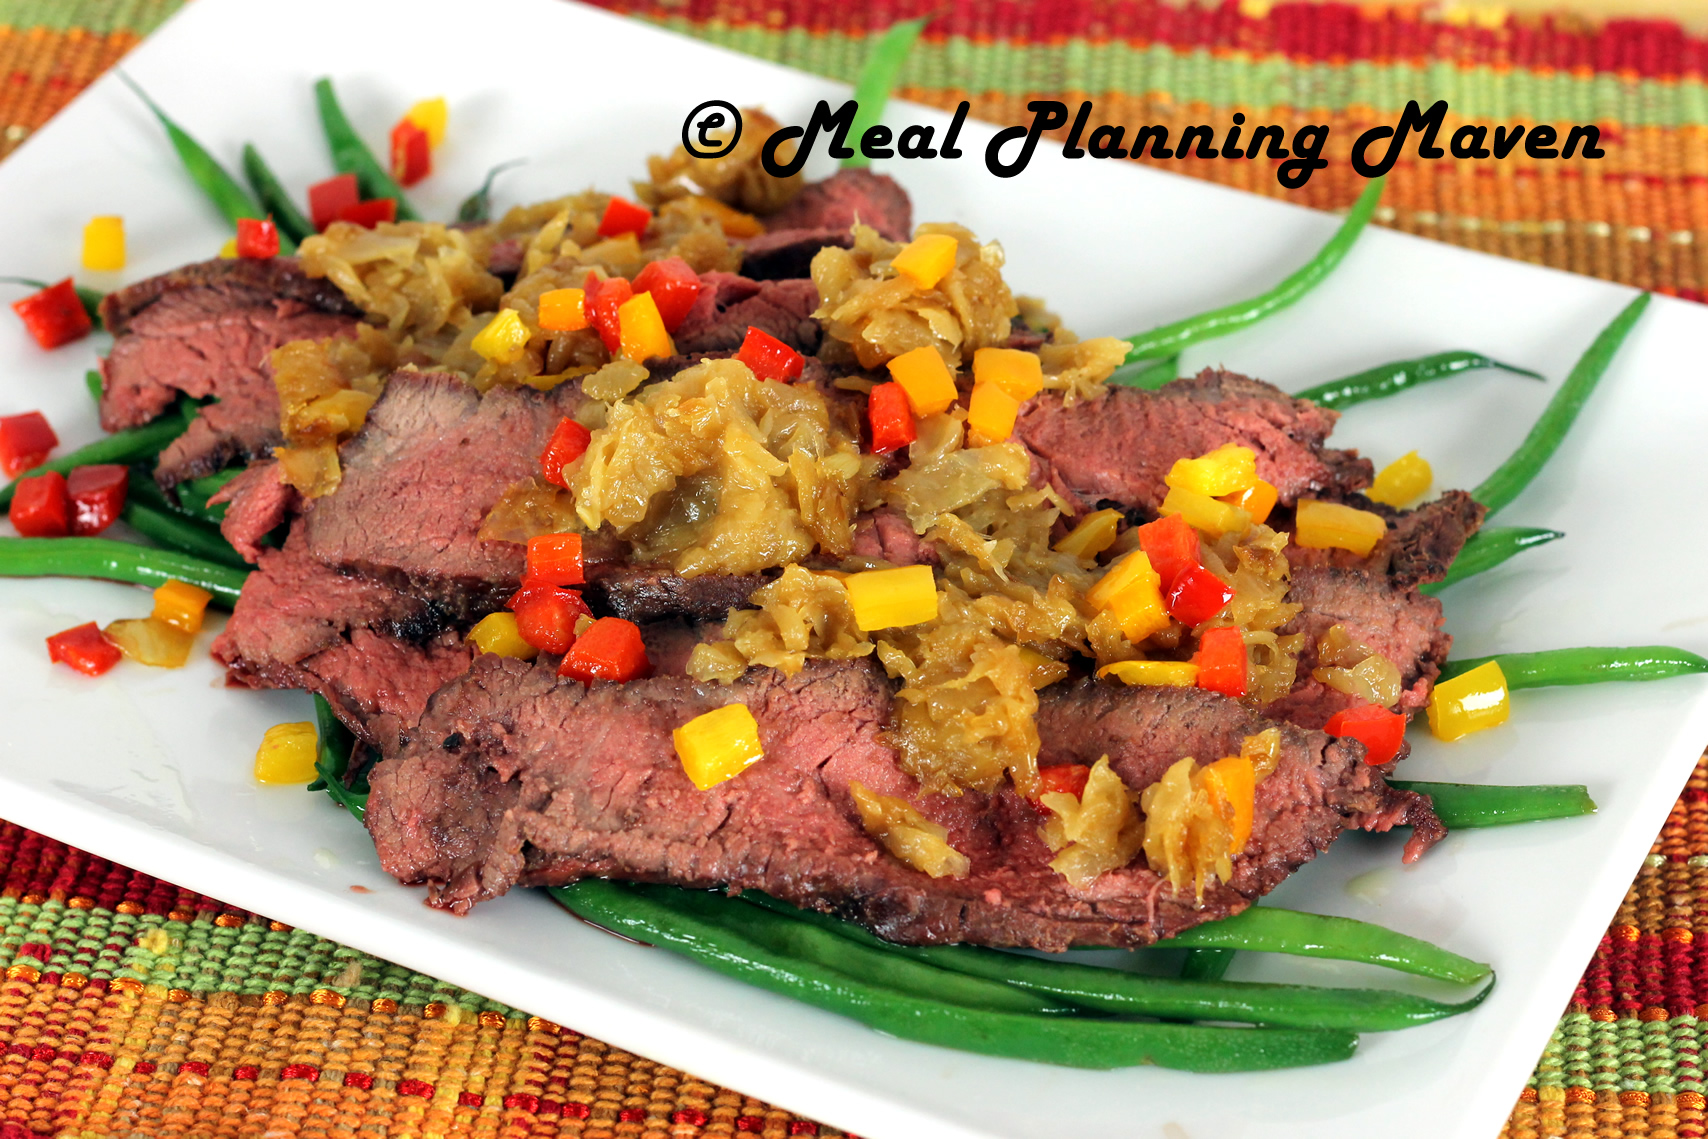 Grilled Tri-Tip Roast with Caramelized Onions 'n Peppers